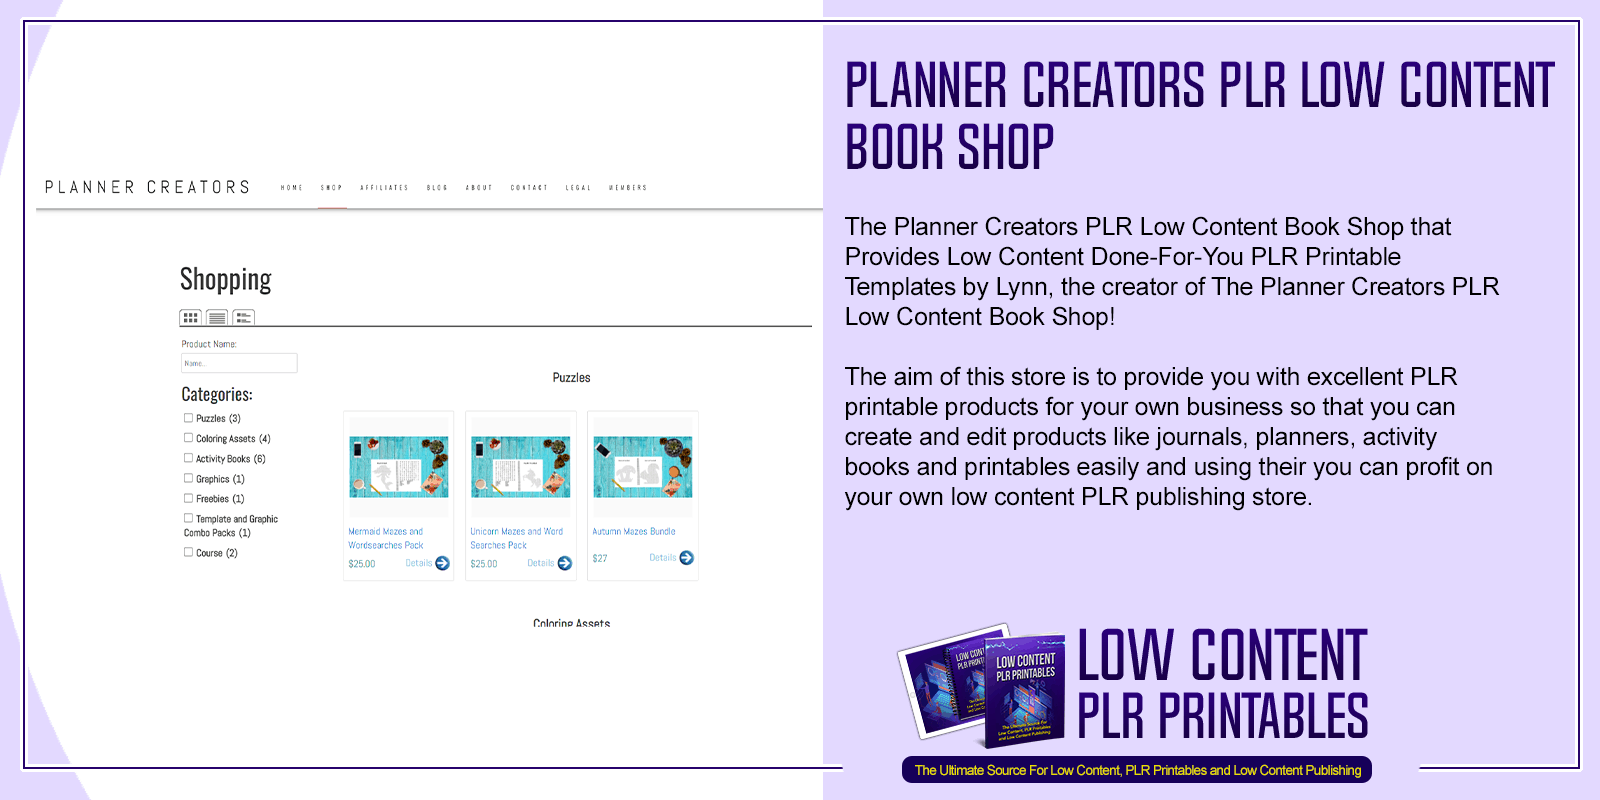 Planner Creators PLR Low Content Book Shop